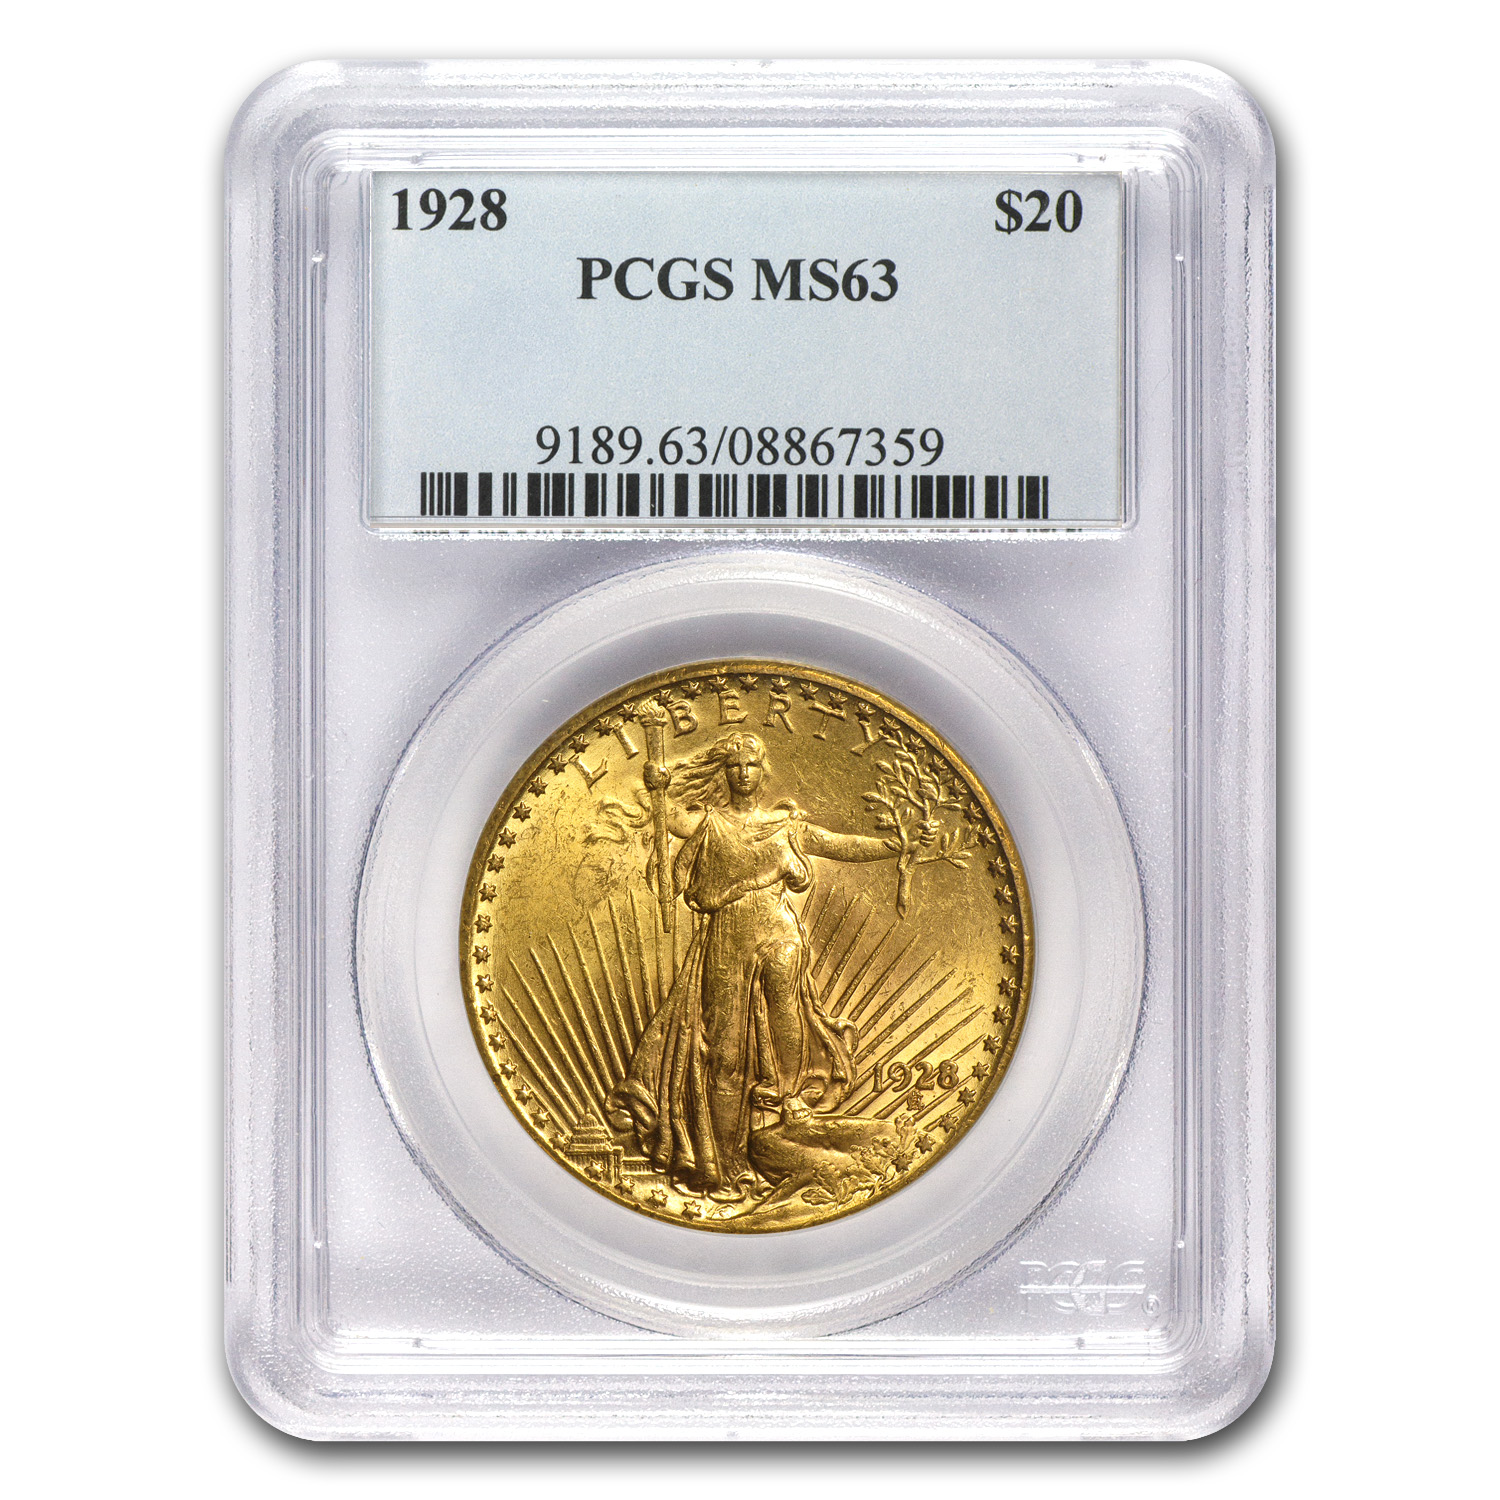 7-Coin $20 St. Gaudens Gold Double Eagle Date Set MS-63 PCGS